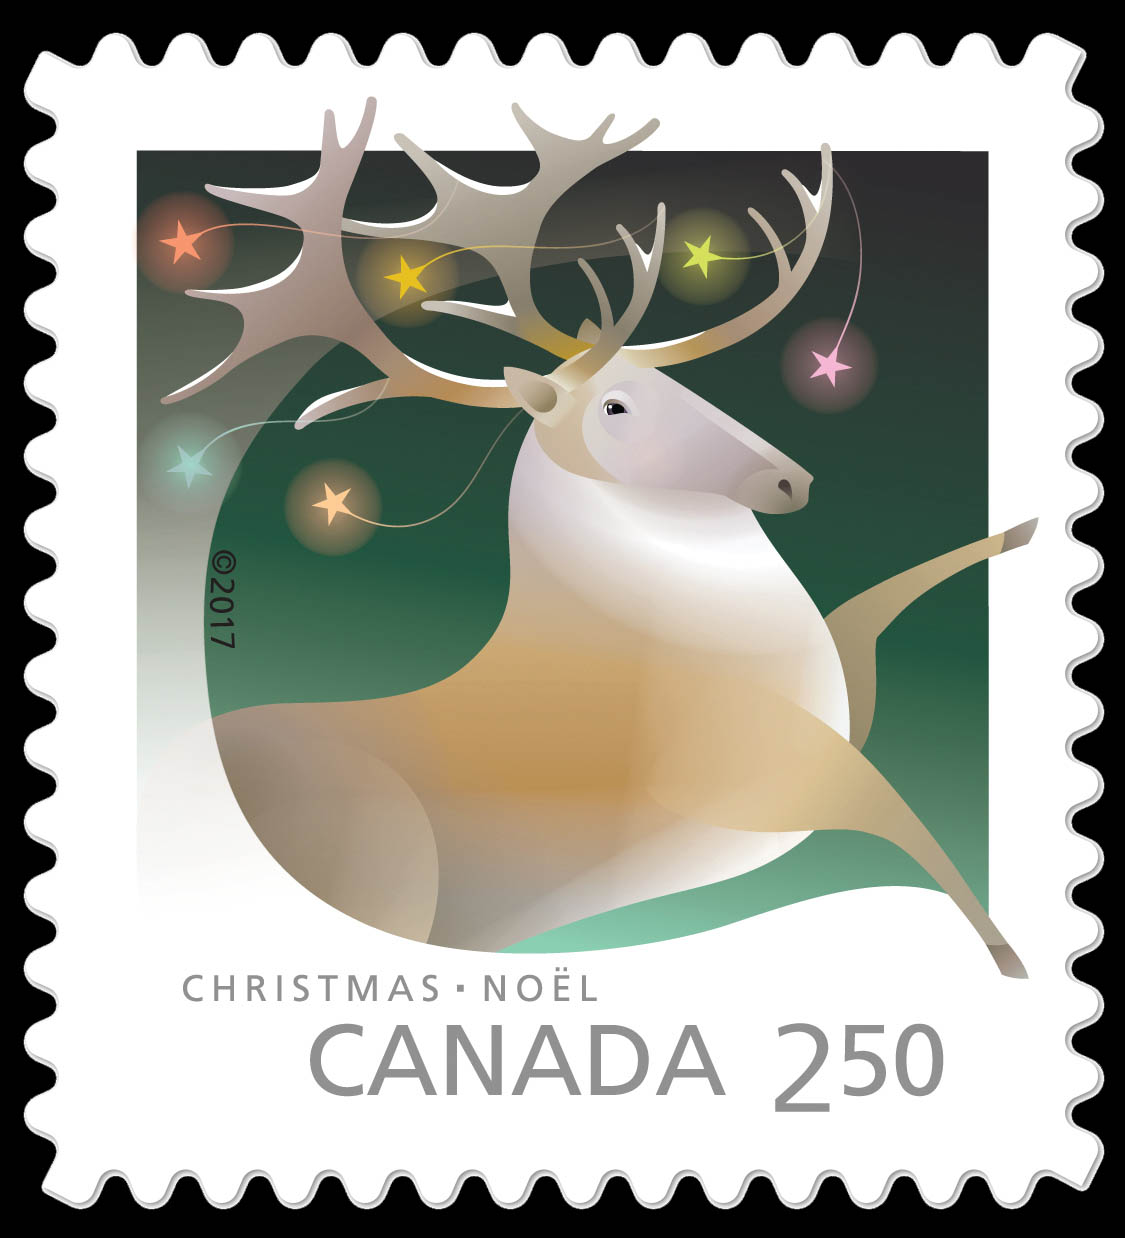 Caribou - Christmas Animals Canada Postage Stamp